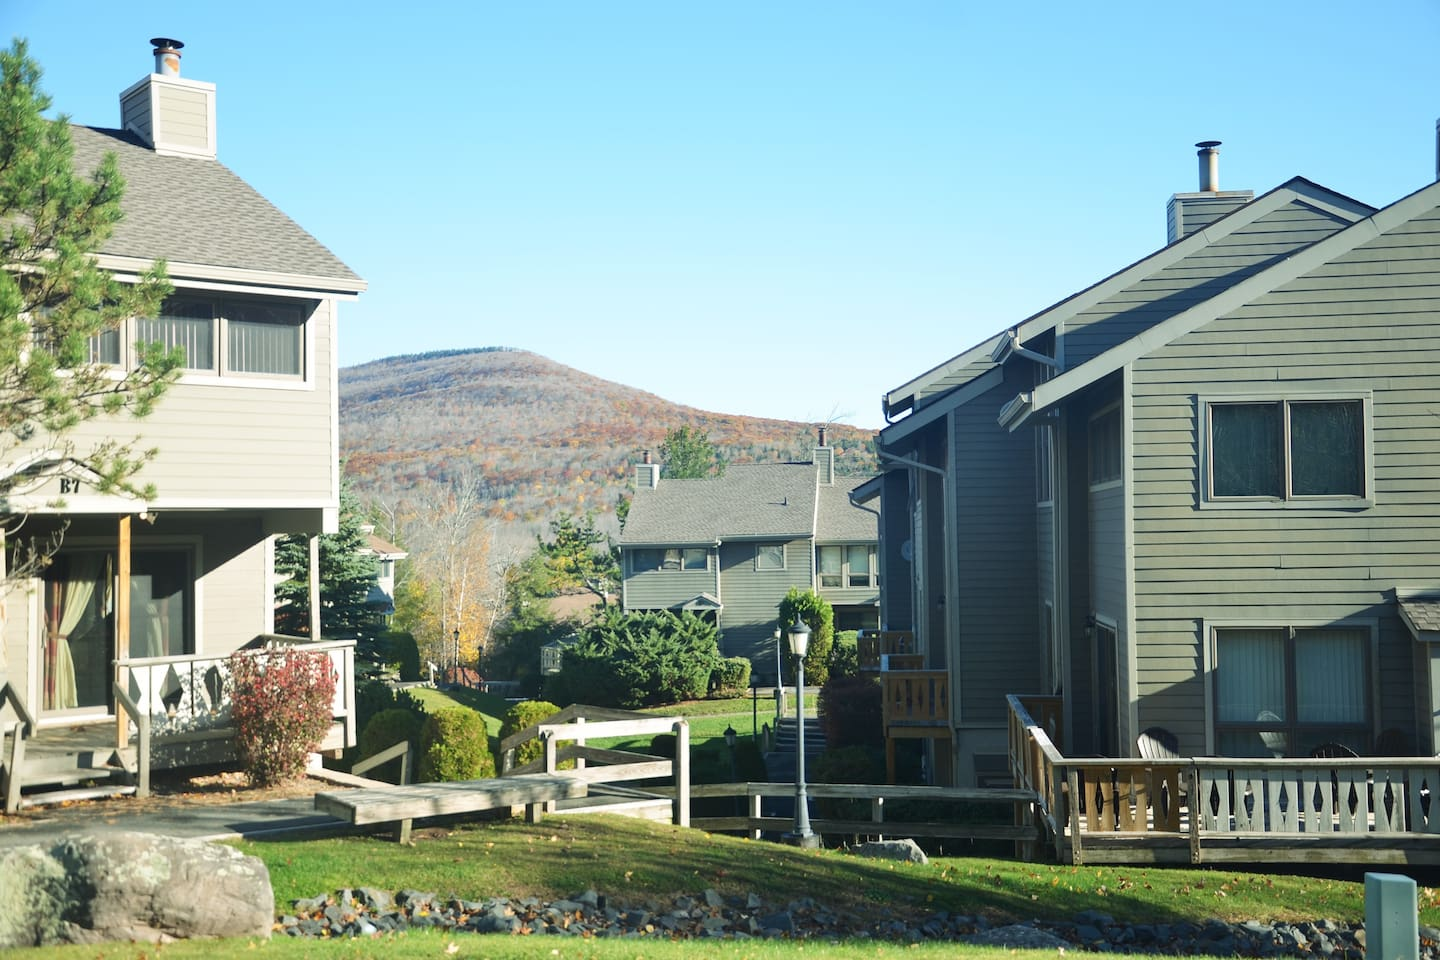 Hunter Highlands condos situated right on the mountain